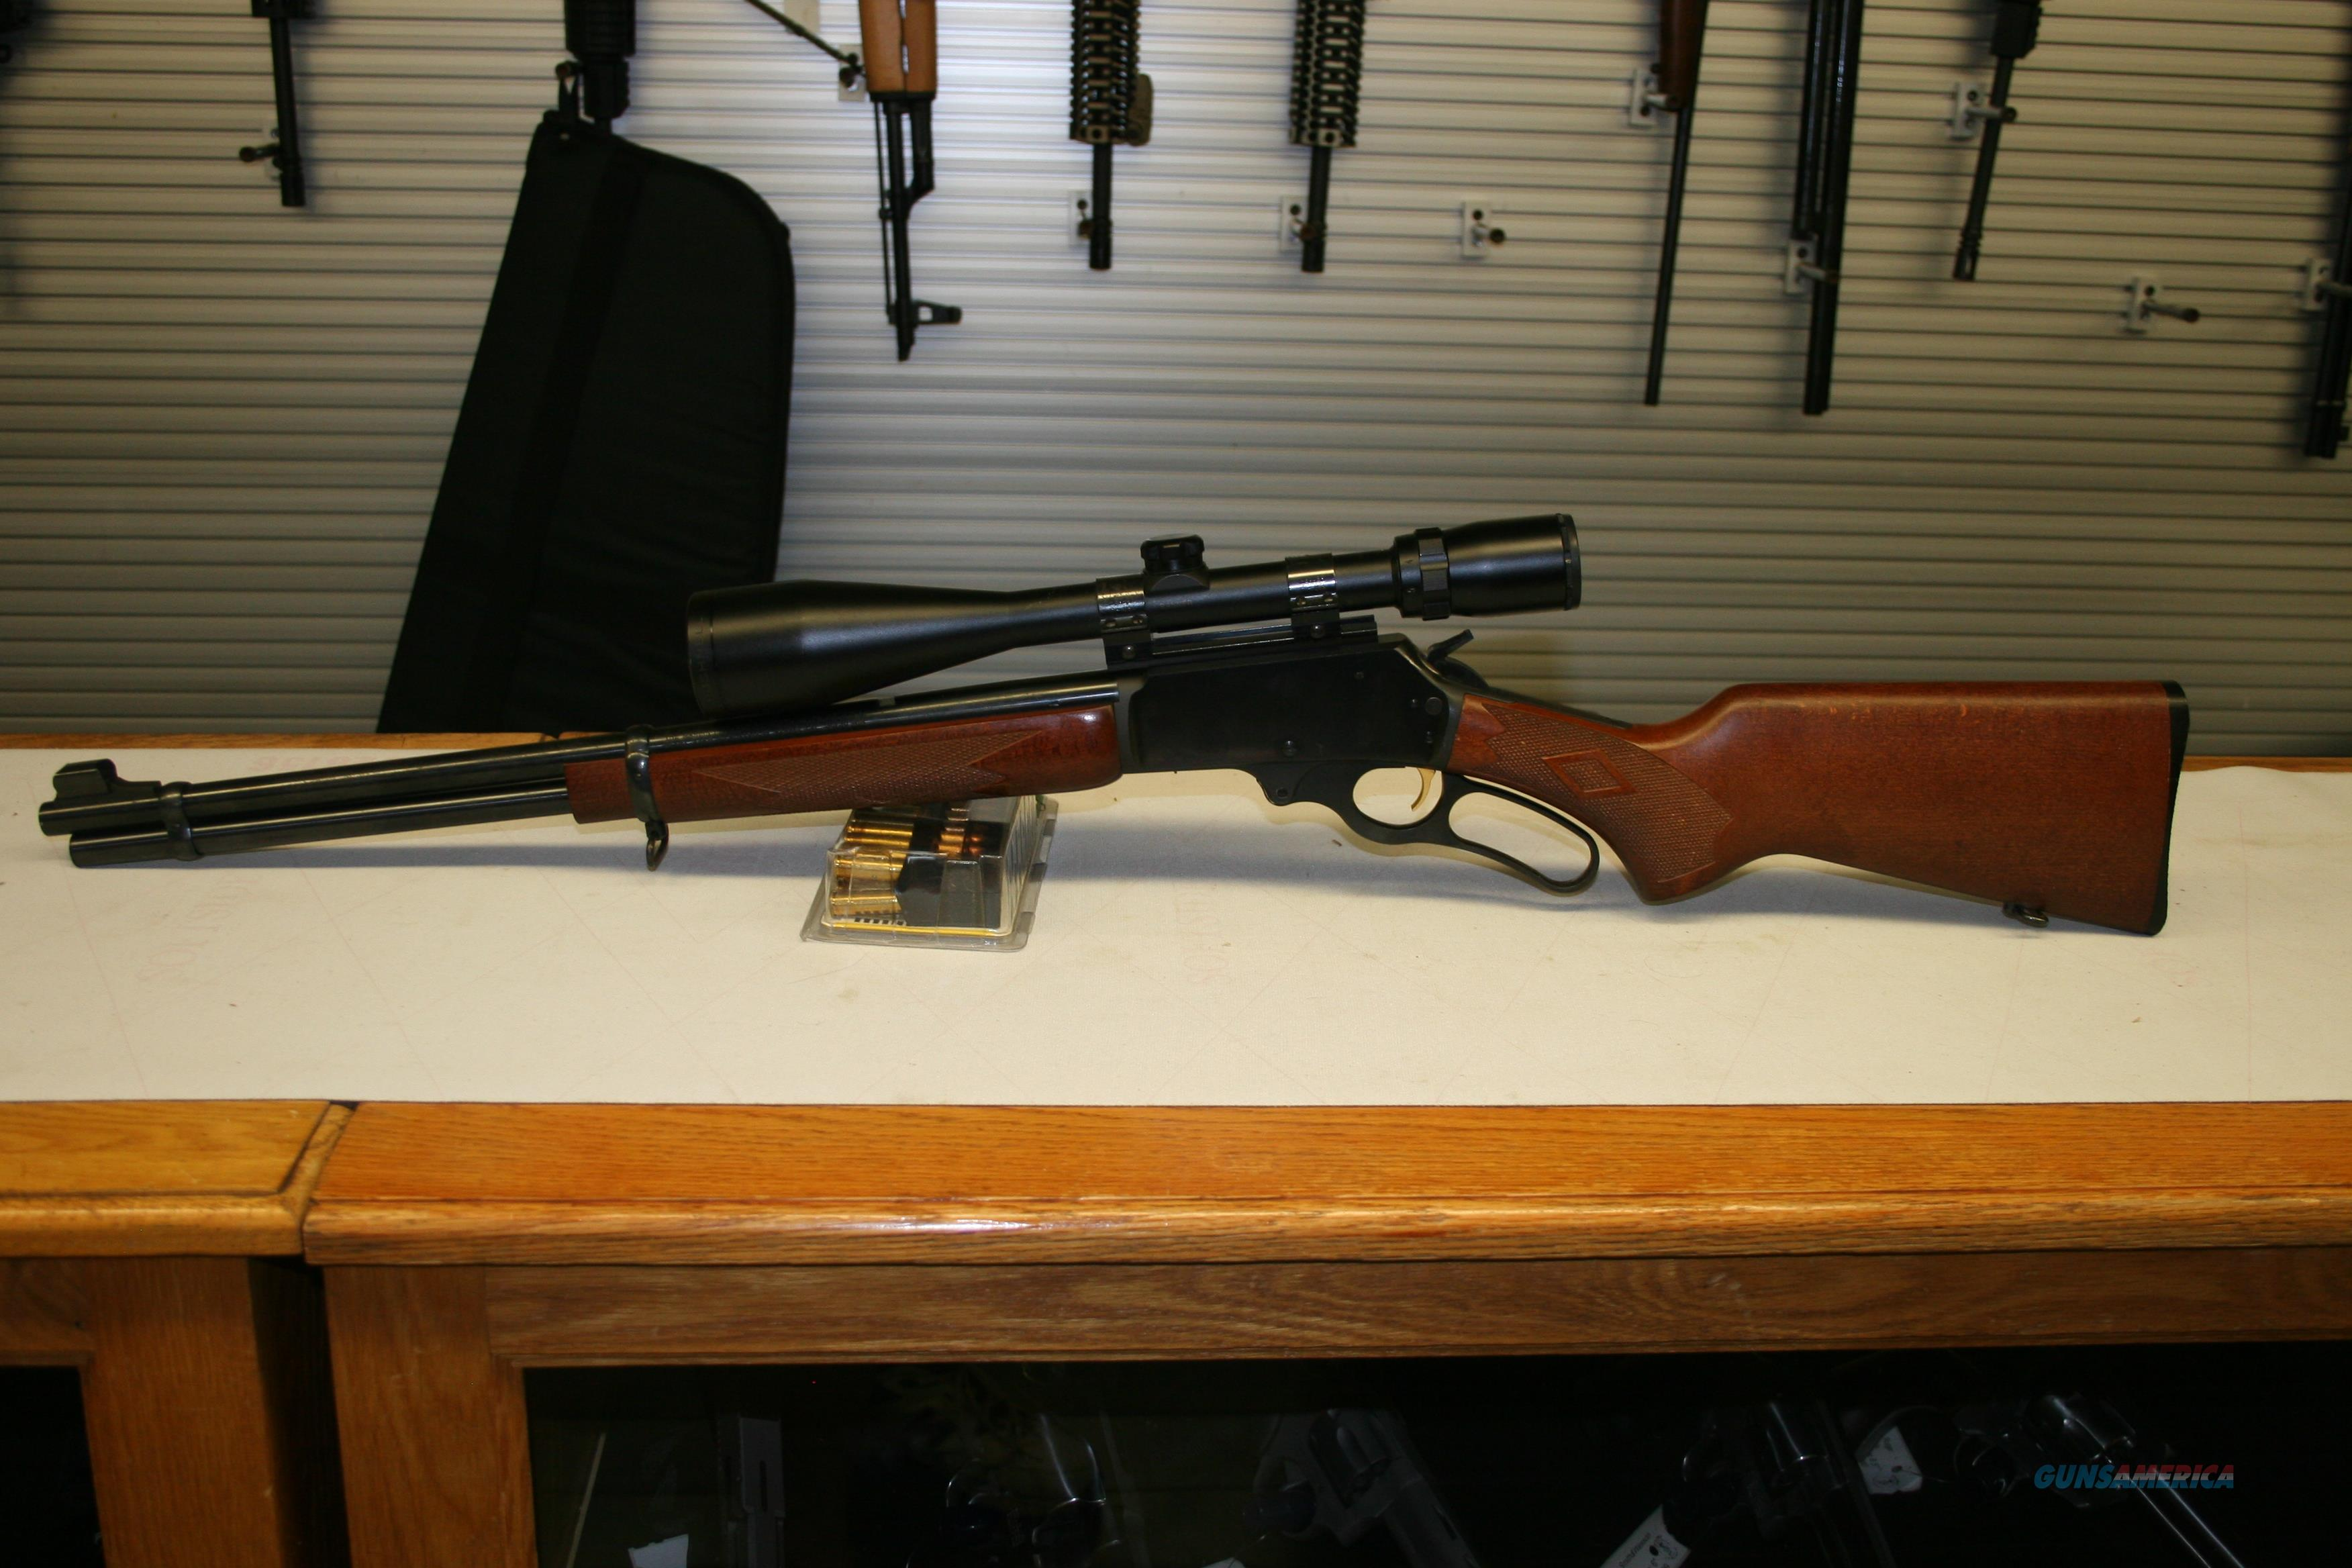 "Marlin 336W,  Bushnell 3-9x32mm scope Lightweight Hunting Rifle Target Gun .30-30 Winchester 20"" Barrel 6 Rounds Laminate Wood furniture Stock W checkering Blued steel.  Guns > Rifles > Marlin Rifles > Modern > Lever Action"